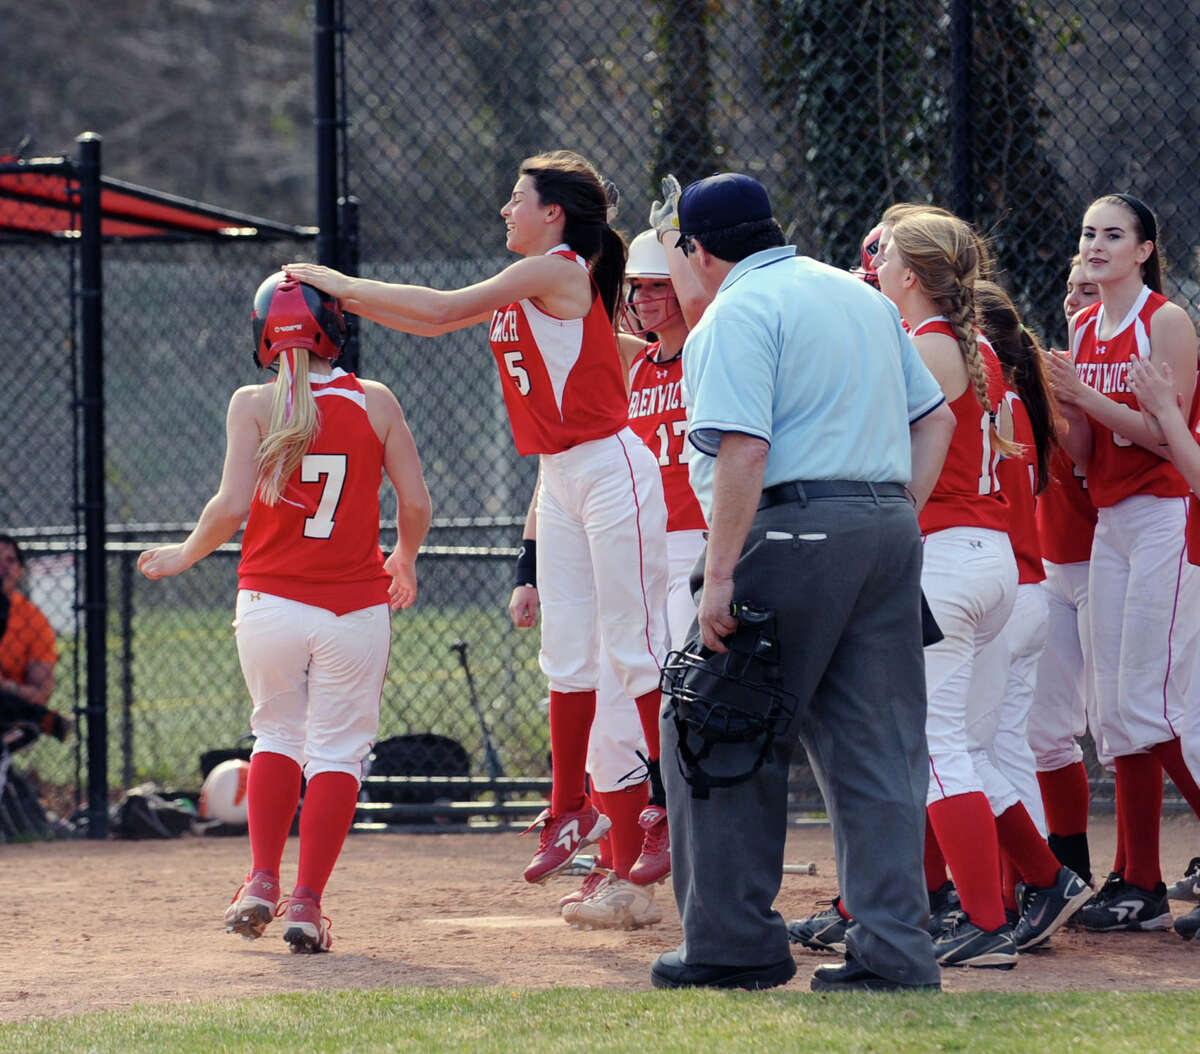 At left, Rebecca DeCarlo # 7 of Greenwich is congratulated by Jennifer Ambrogio # 5 and her teammates after hitting a homerun to lead off the game for Greenwich in the bottom of the first inning during the girls high school softball game between Greenwich High School and Stamford High School at Greenwich, Wednesday, April 10, 2013. Greenwich won the game 7-5 to remain unbeaten.